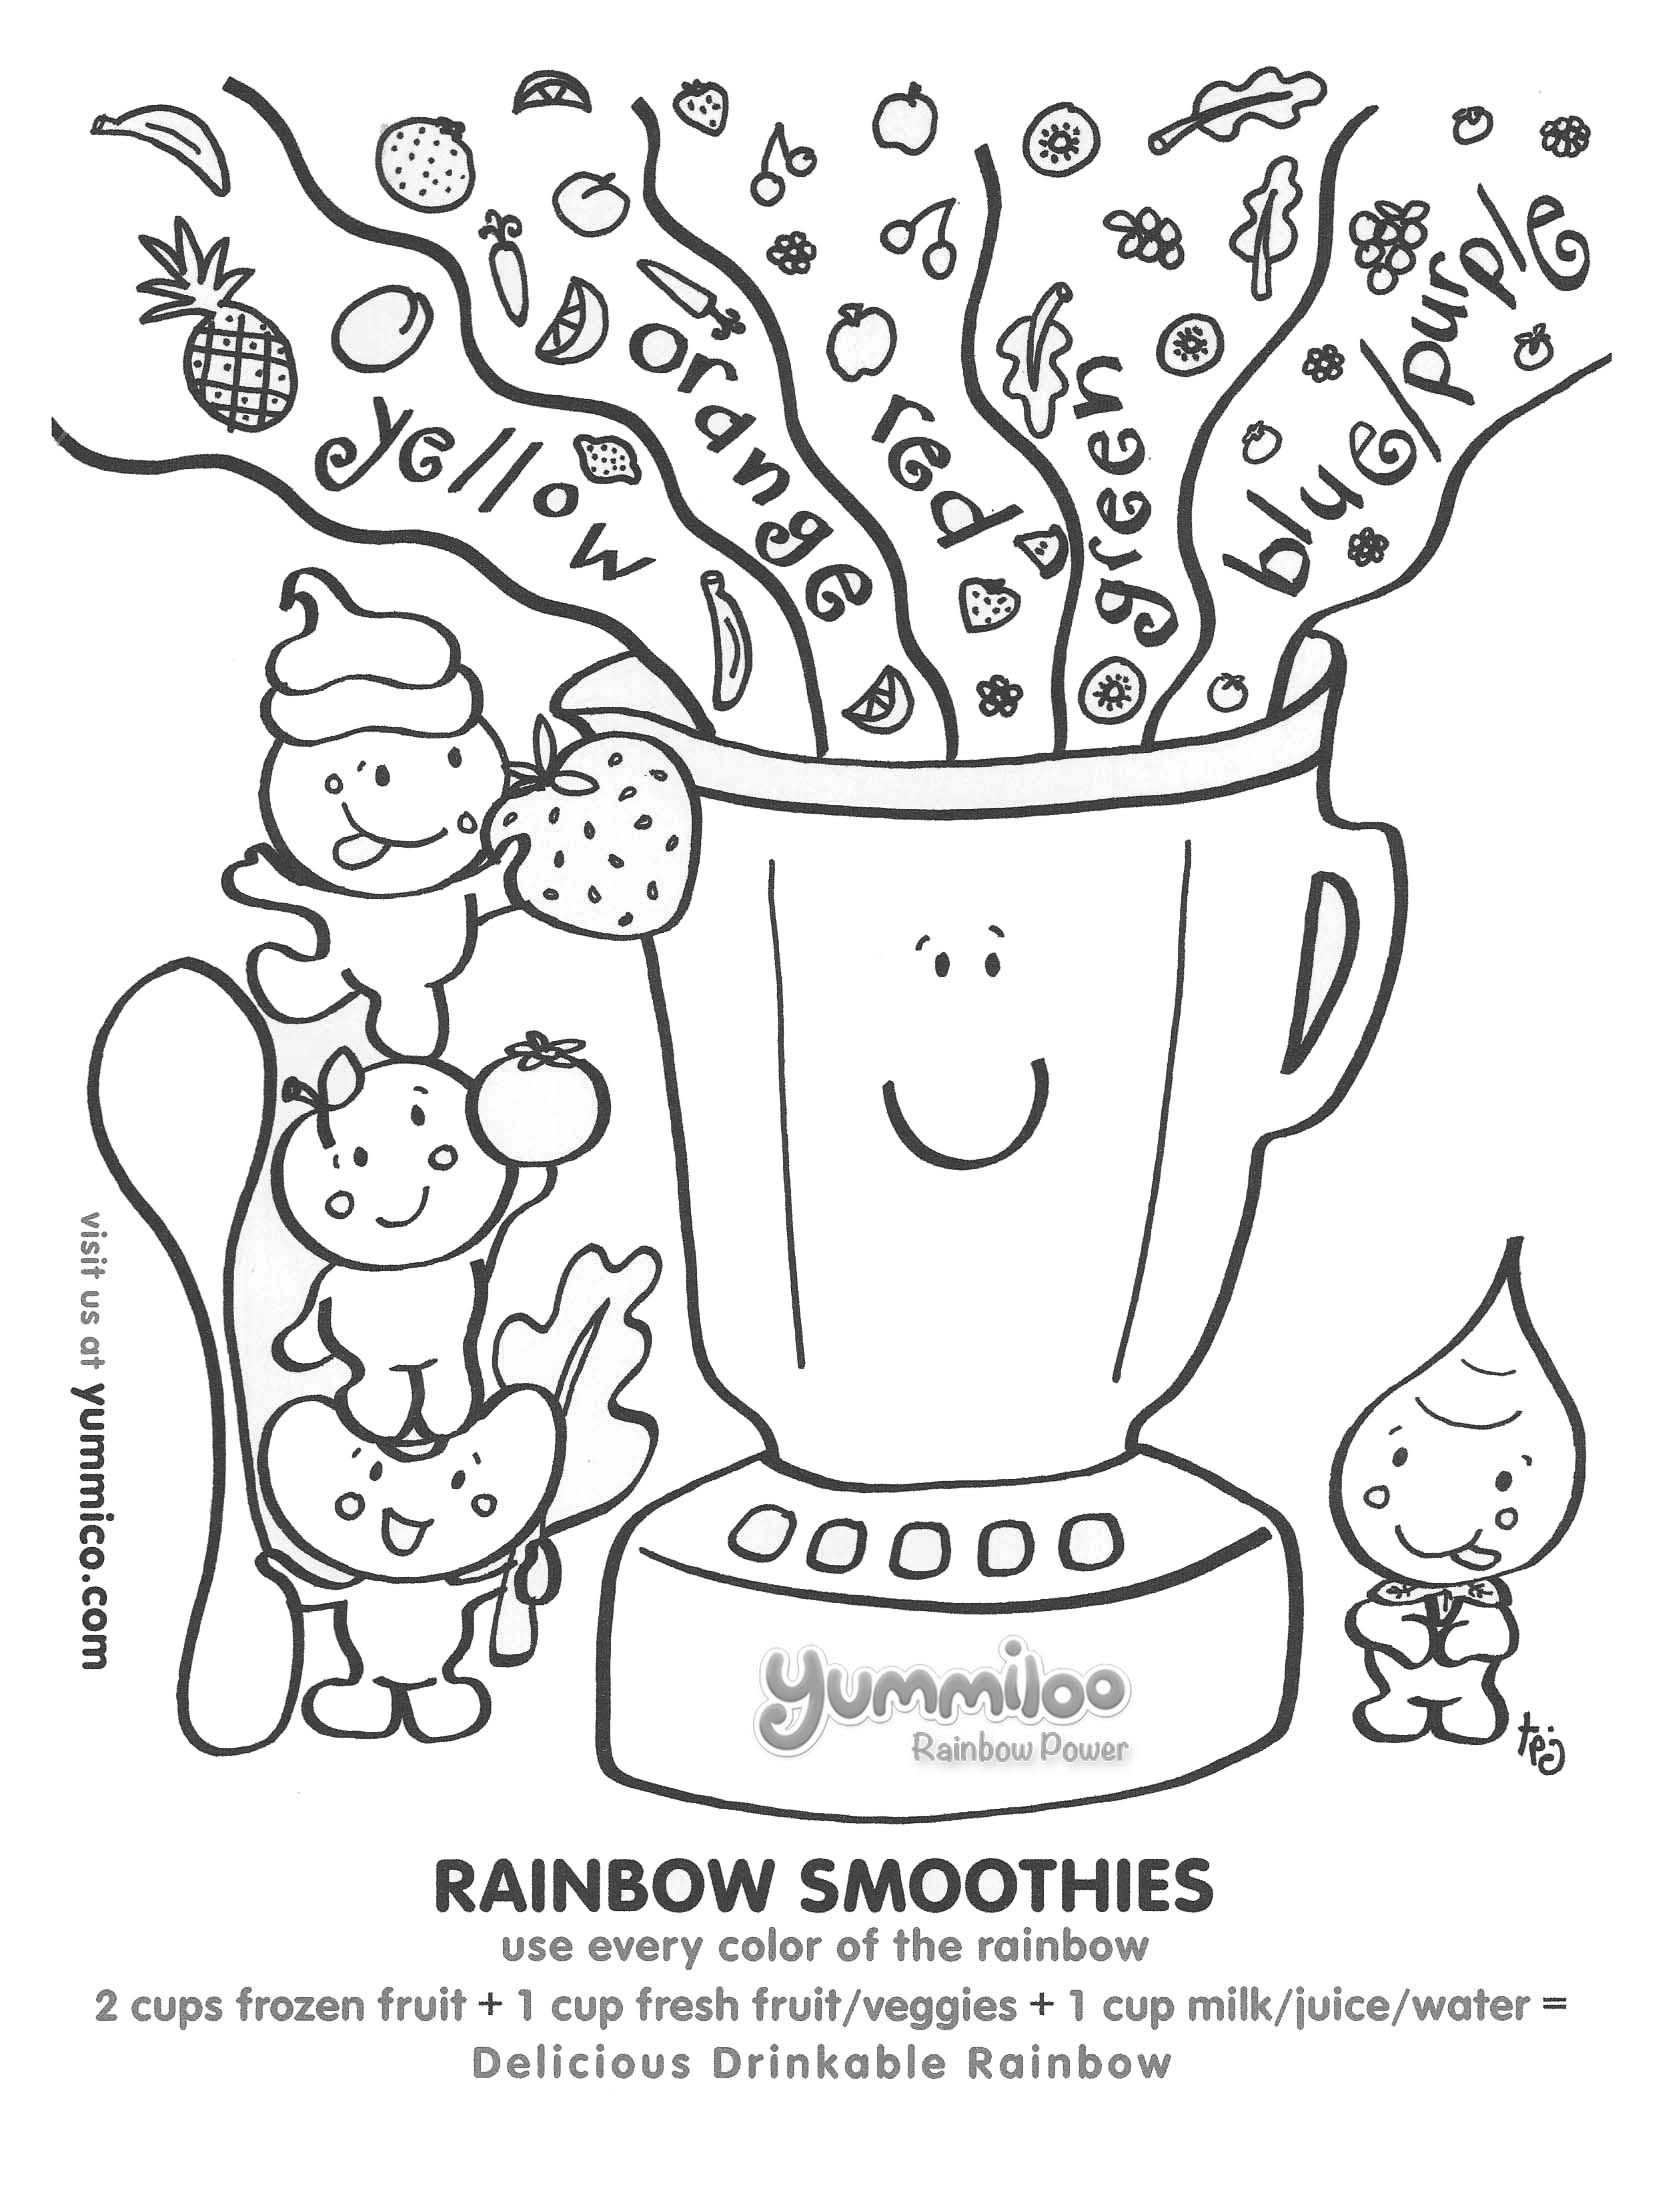 Yummi App Yum Yum Kids Food Coloring Coloring Pages